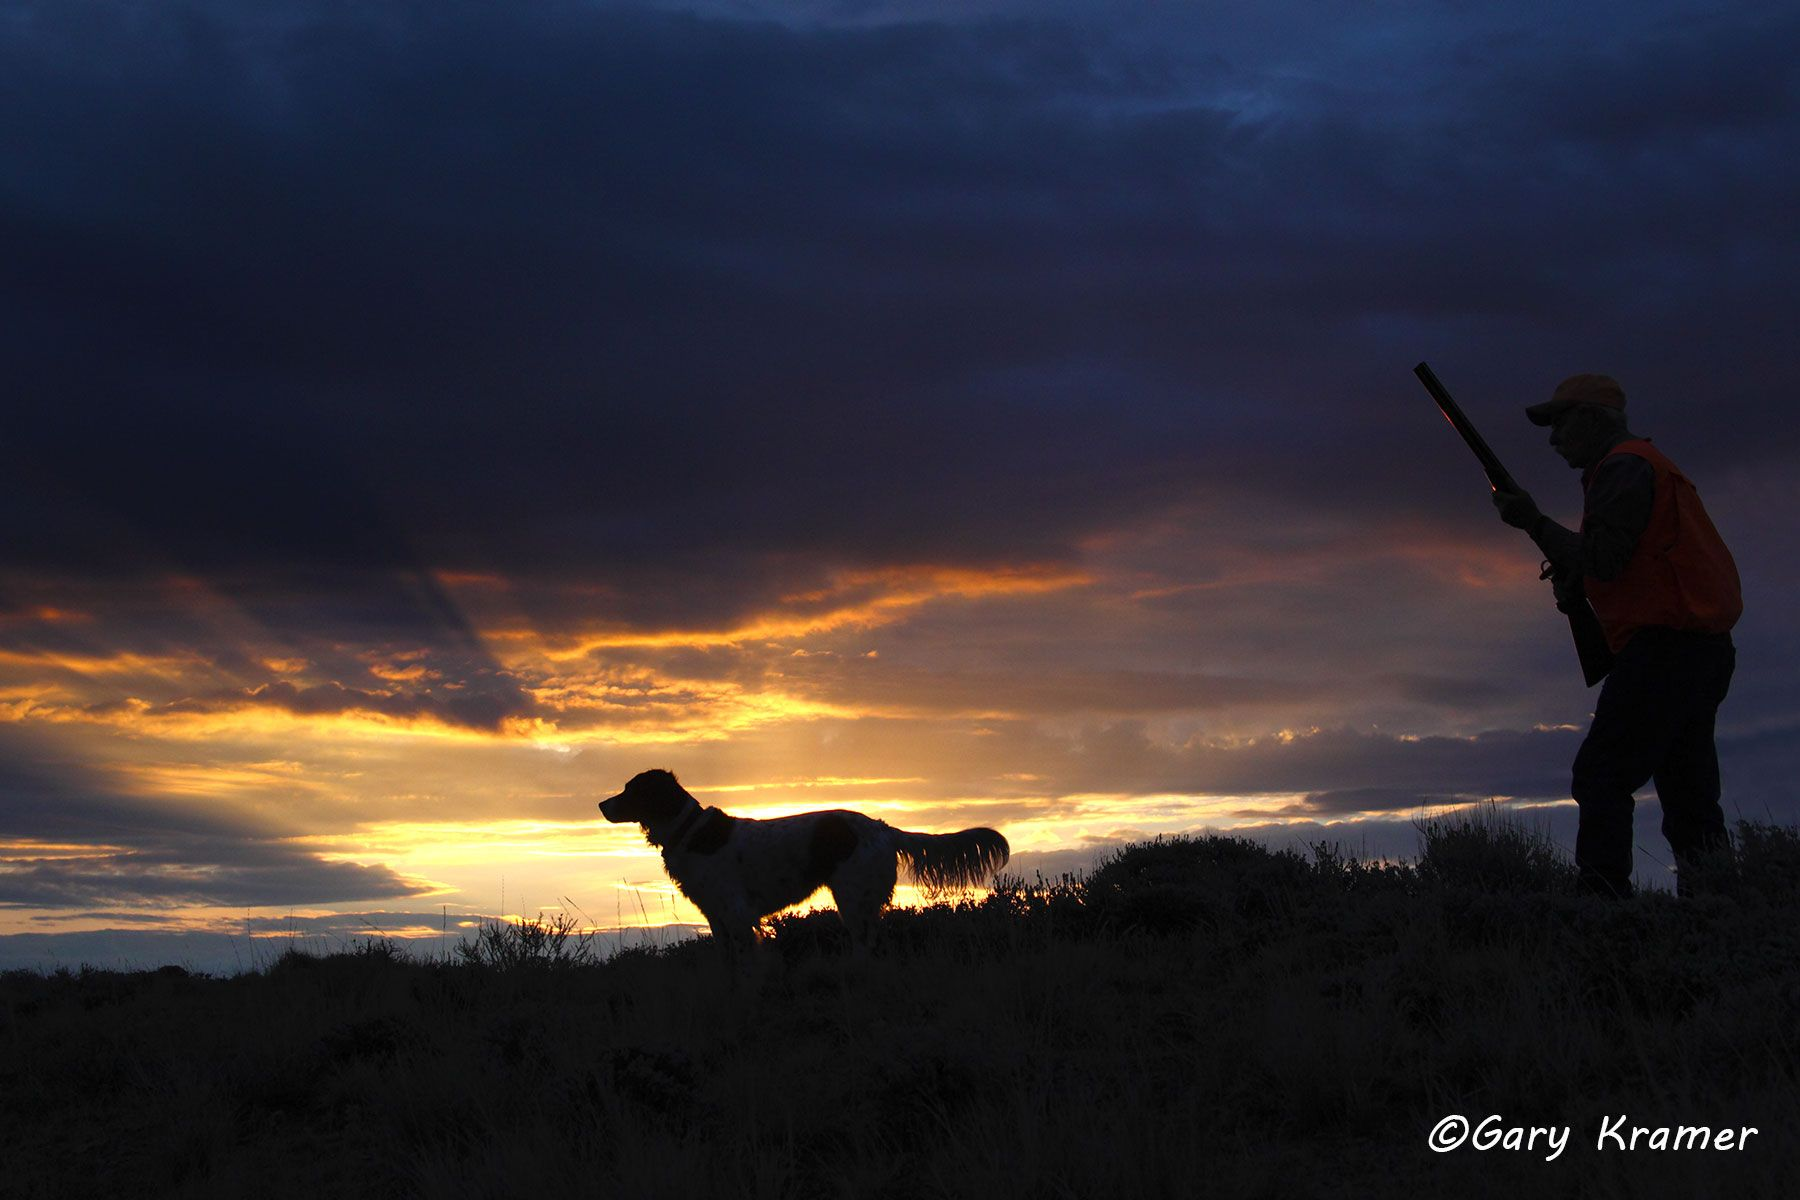 Upland bird hunter(s) & Setter at sunrise/sunset - NHUssx#008d